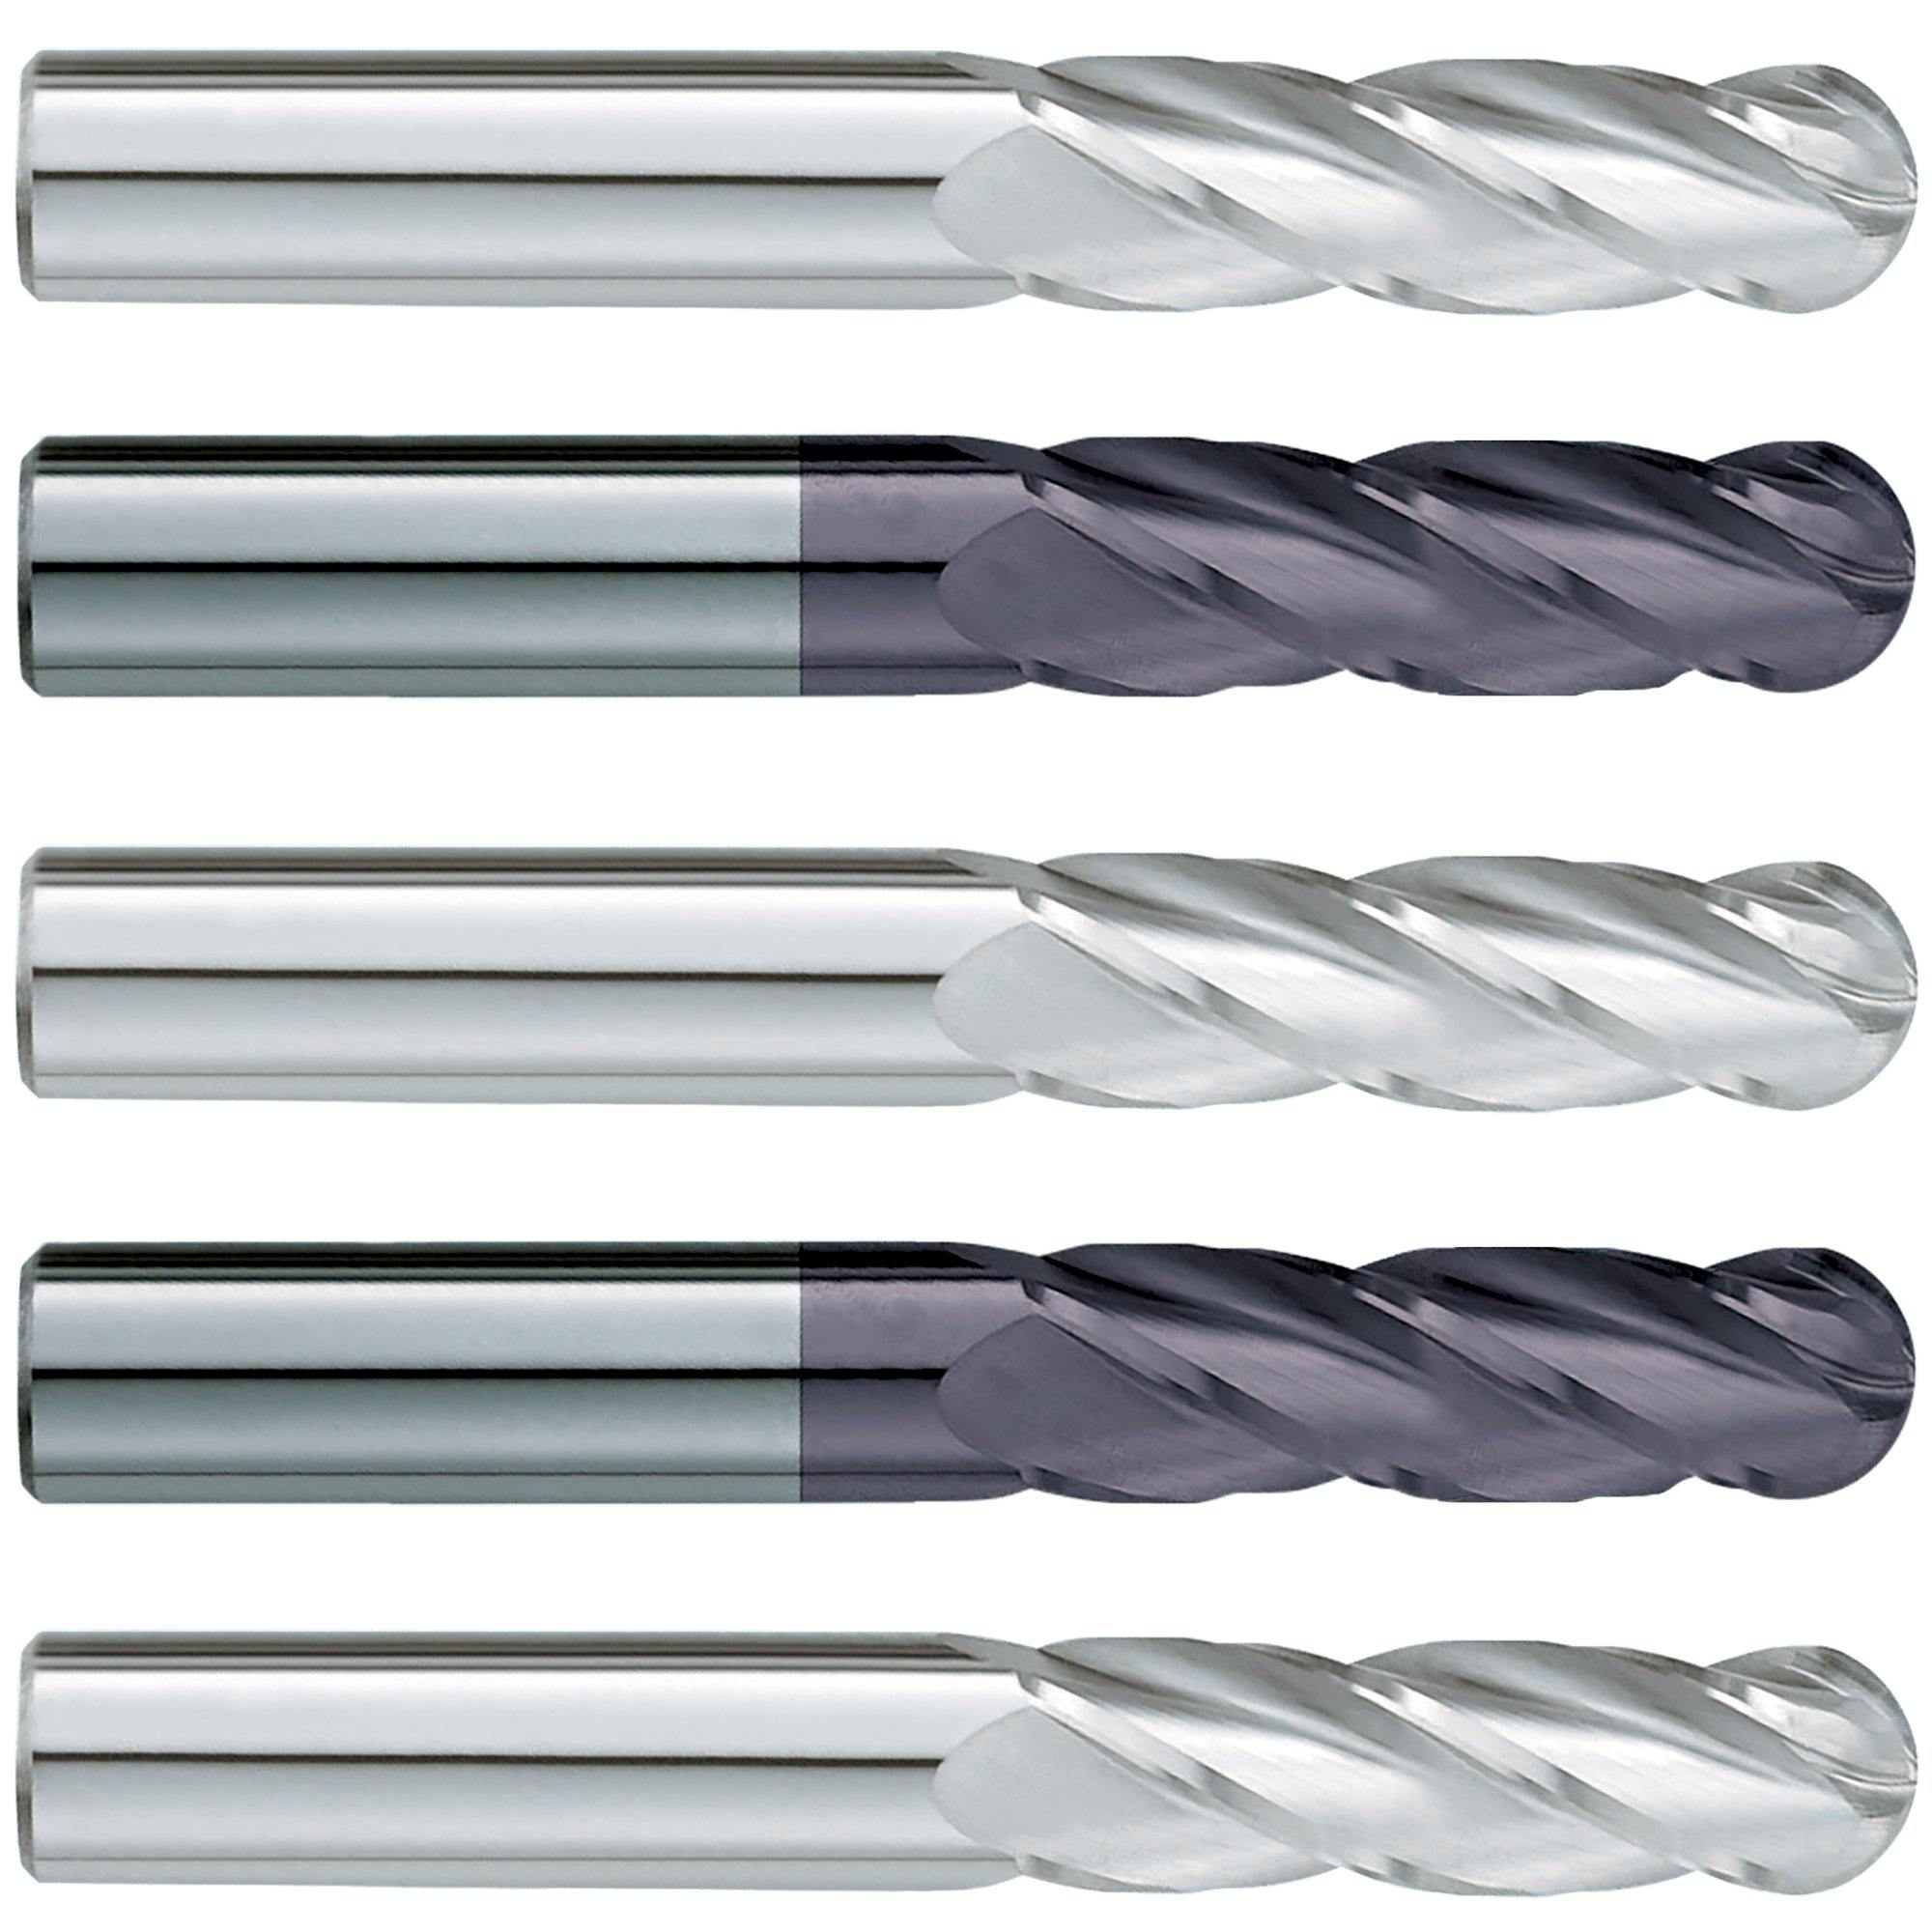 "(5 Pack) 1/8"" x 3/4"" x 2-1/2"" Long Ballnose Carbide End Mill - End Mill Store"